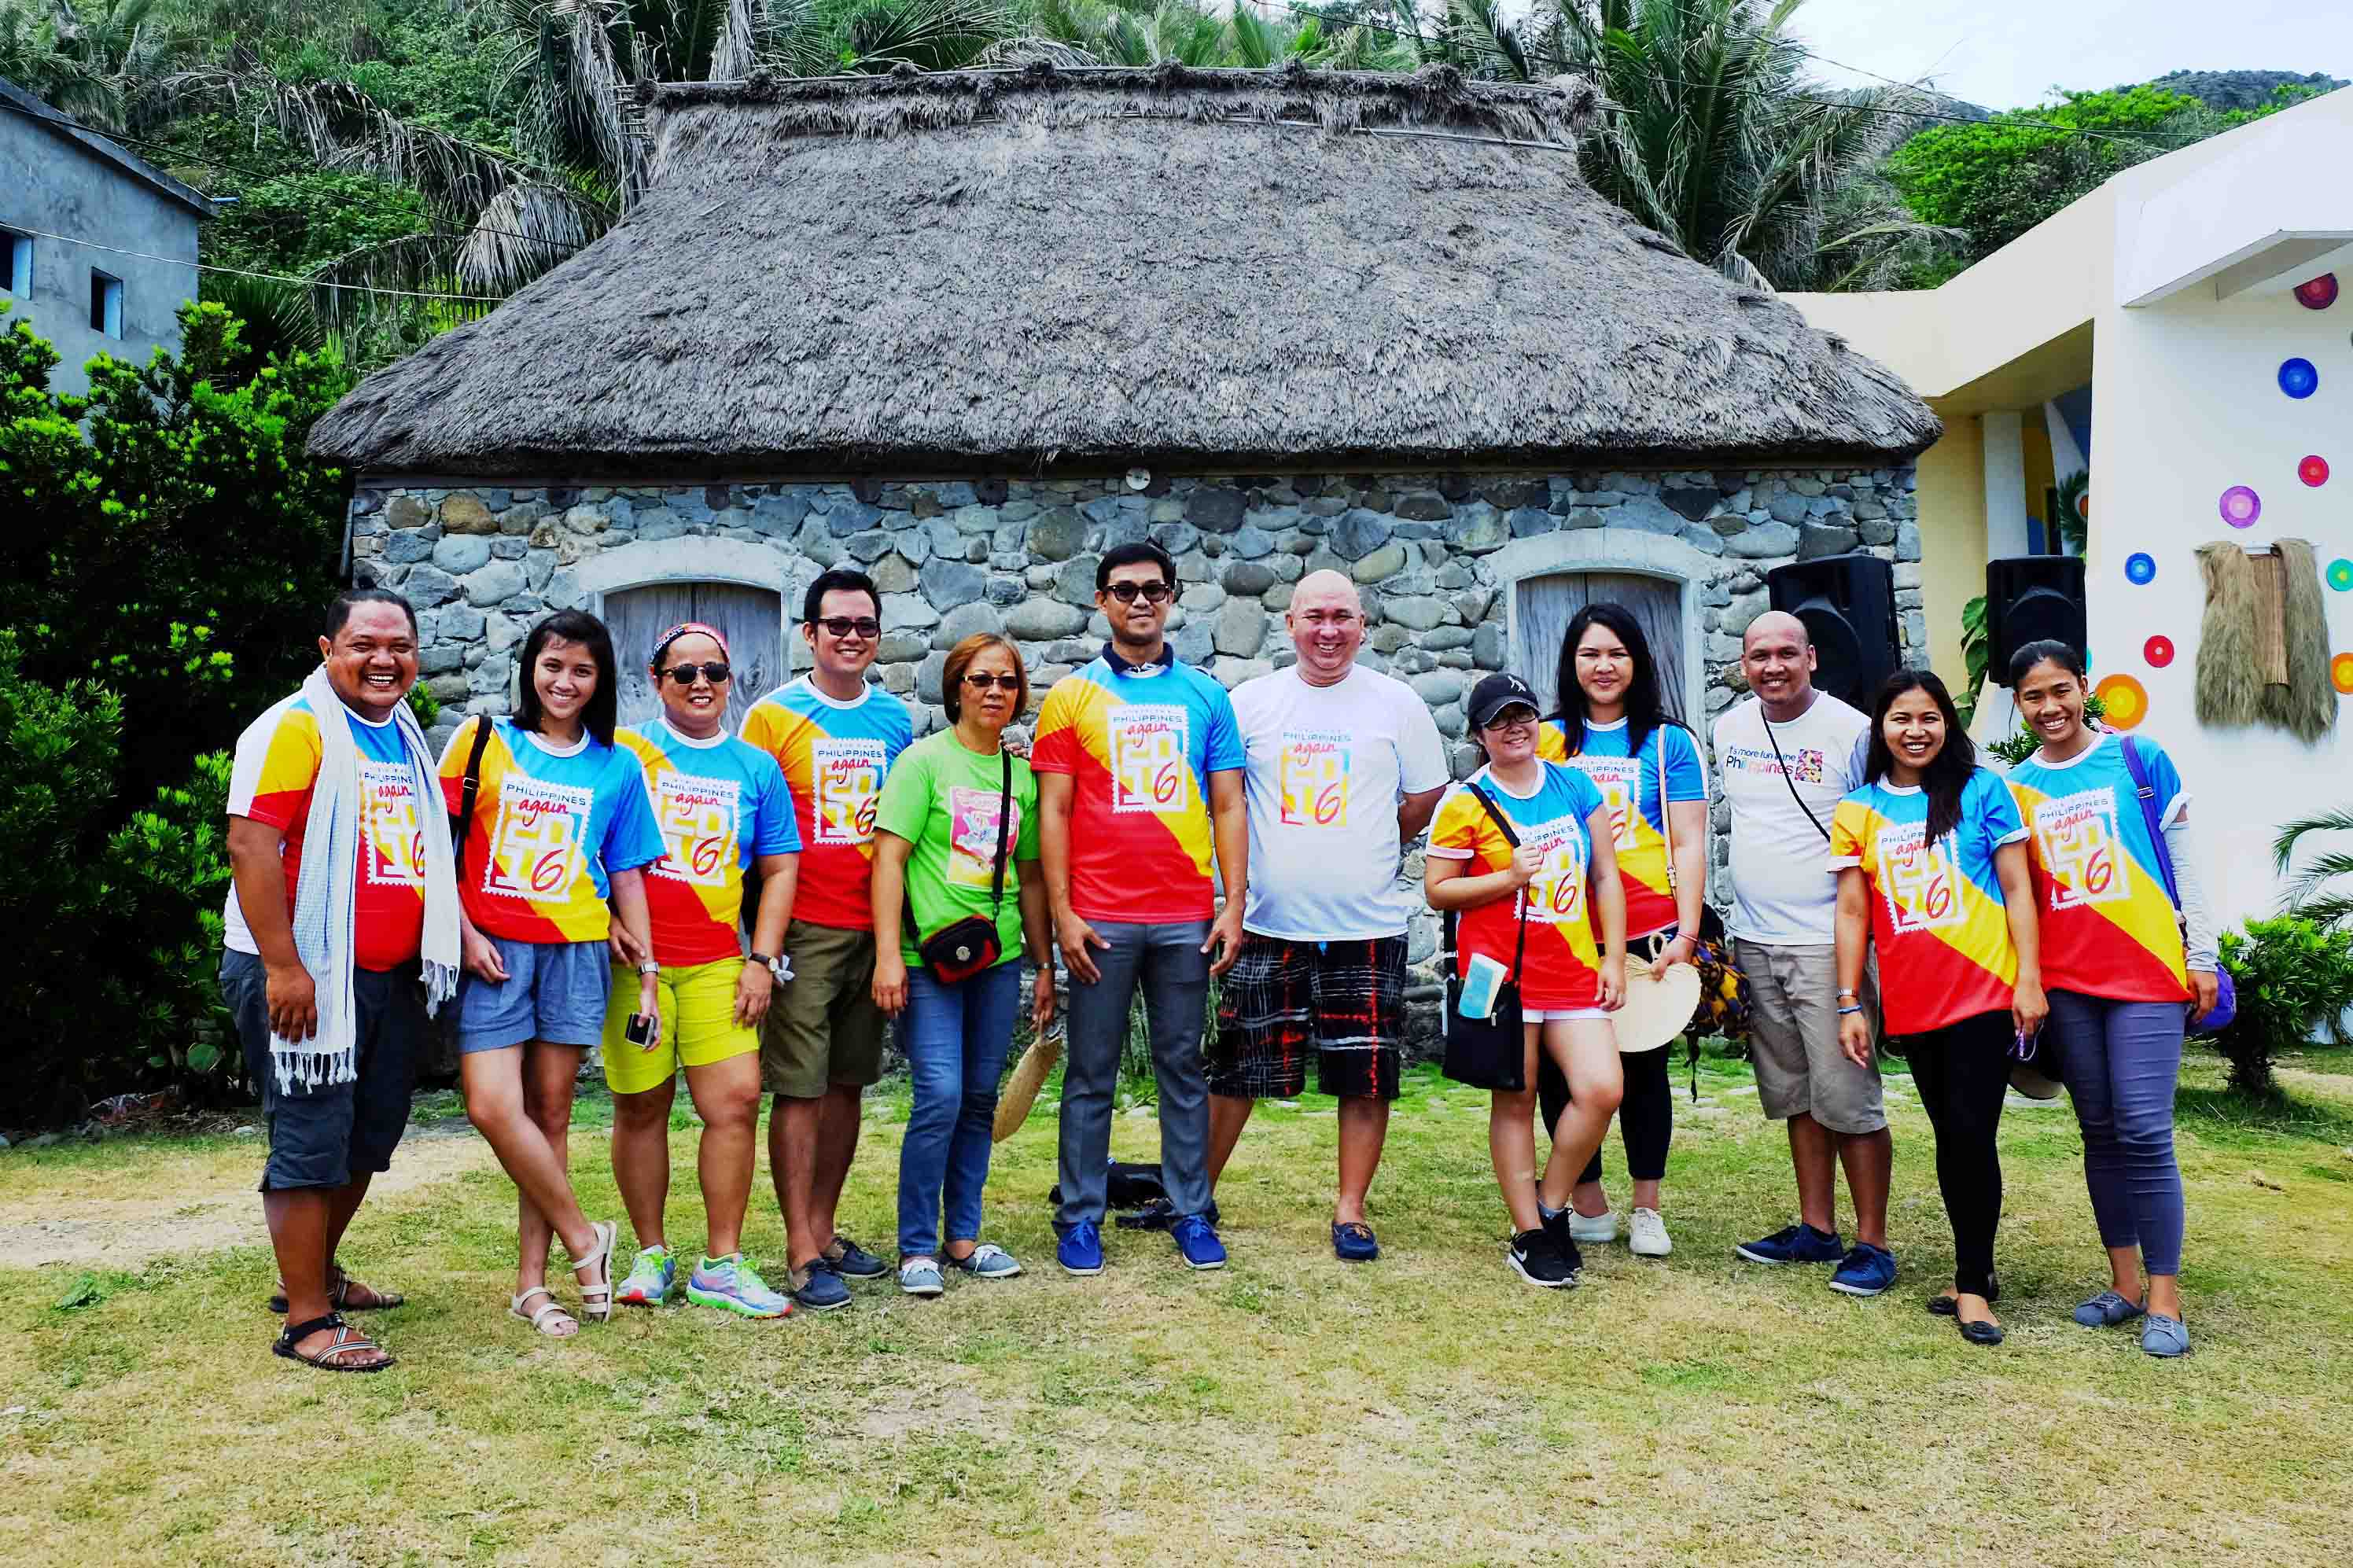 CHIPPING IN. Everyone helped make the festival a success. In the photo are DOT Region II Director, Vir Maguigad together with representatives from the Tourism Promotions Board, Batanes Tourism Office, Wakay Tours u0026 members of the media. Photo by Potpot Pinili/Rappler